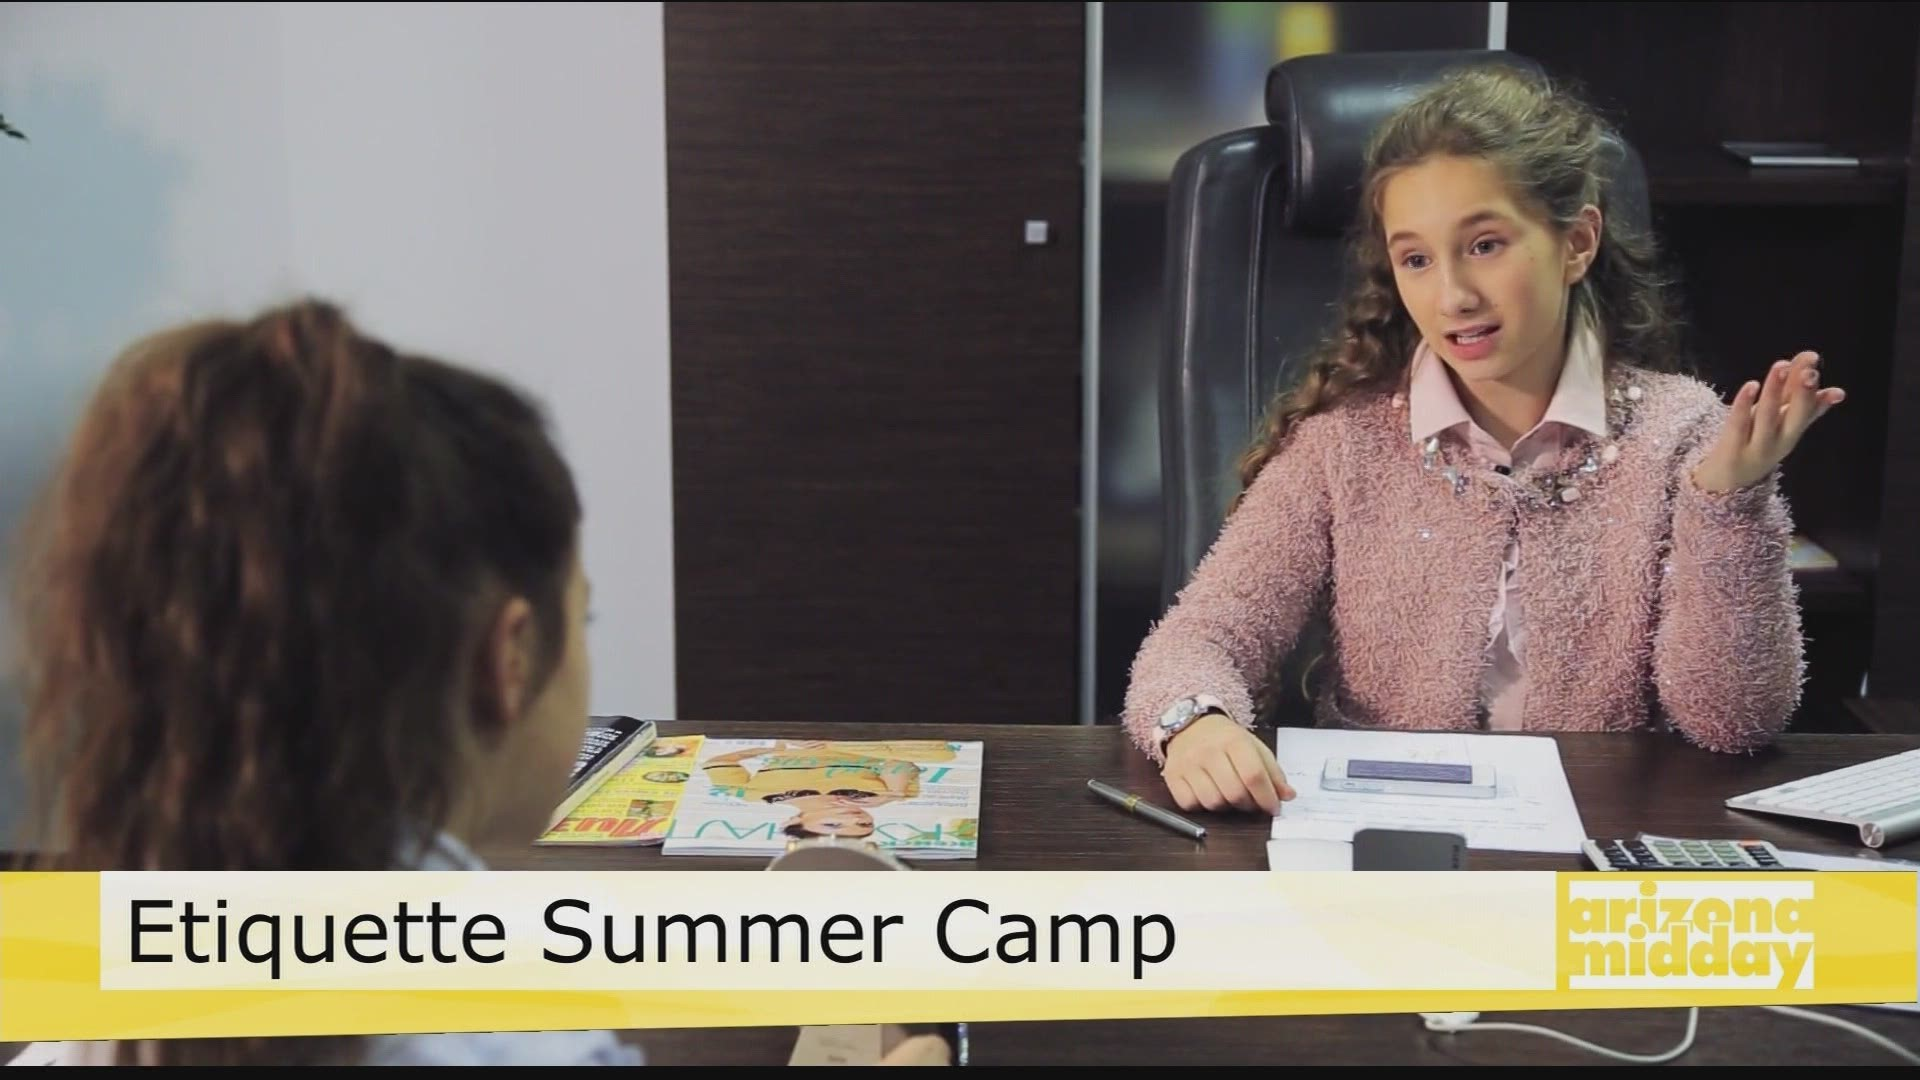 Summer Etiquette Camps for Kids and Teens | 12news.com